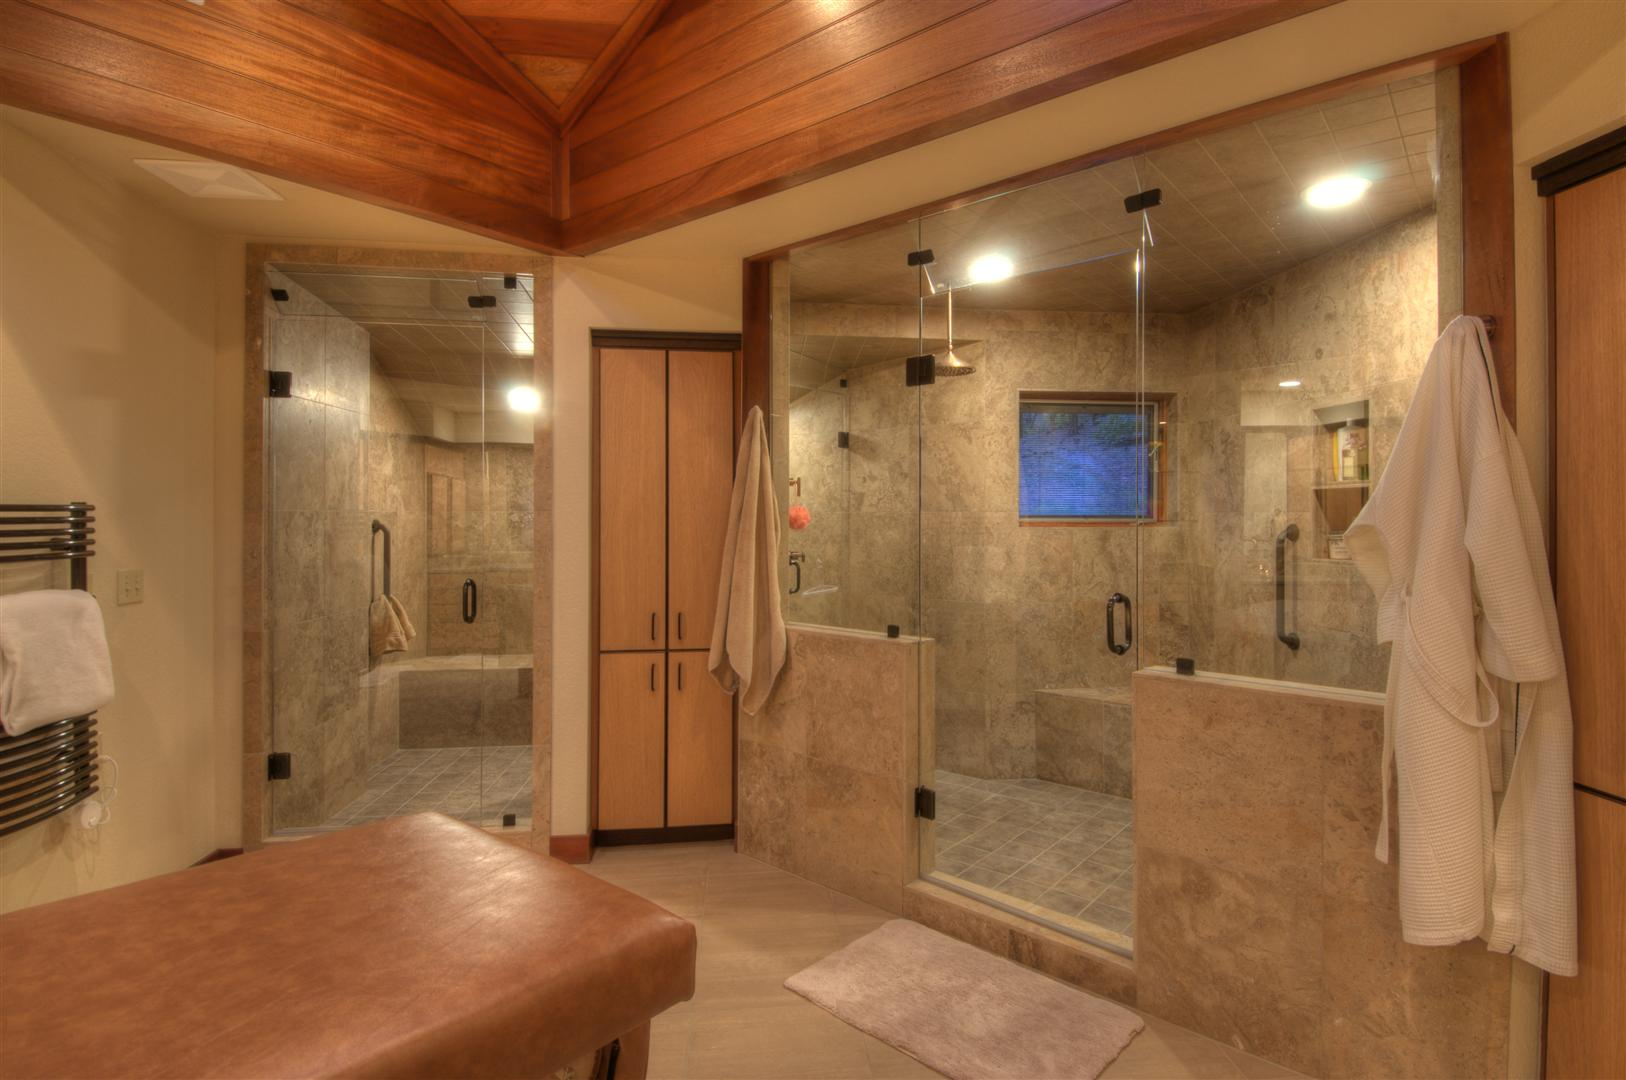 Bathroom design and remodeling in durango colorado Designs for bathrooms with shower